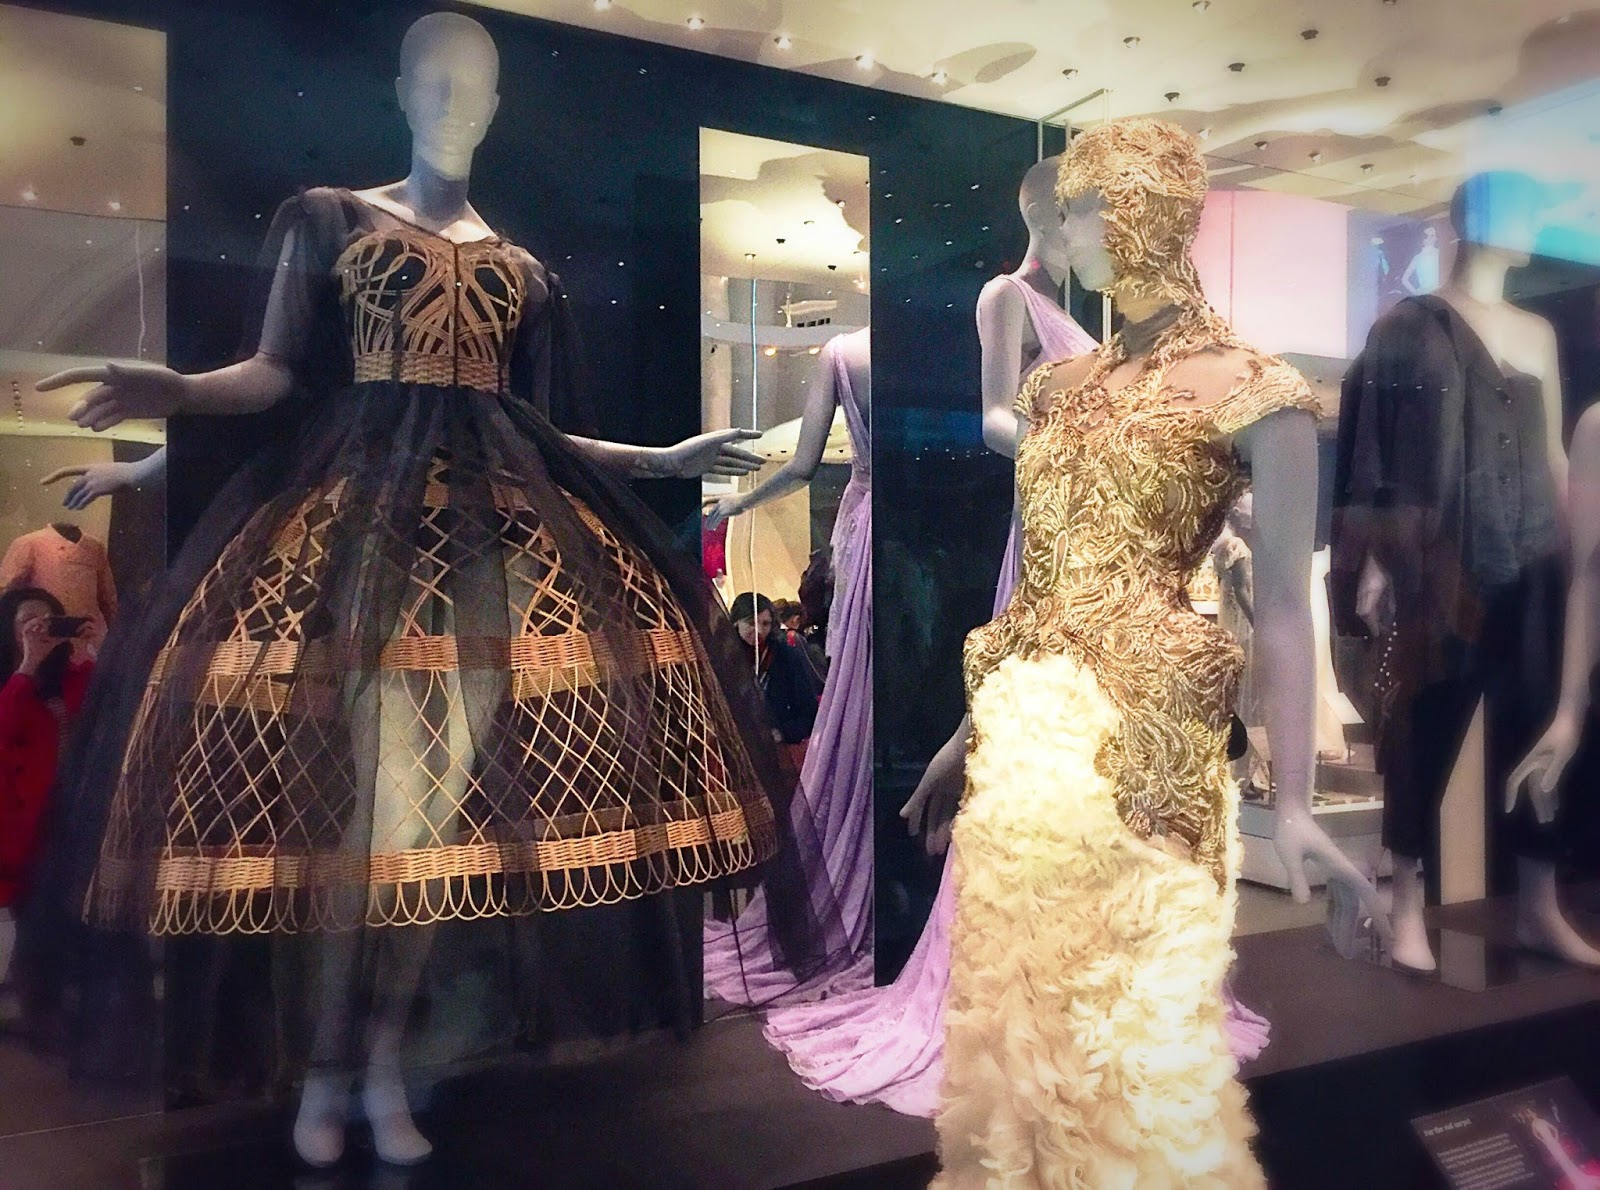 dolce and gabbana wicker dress and Alexander McQueen Feather Dress fashion exhibition